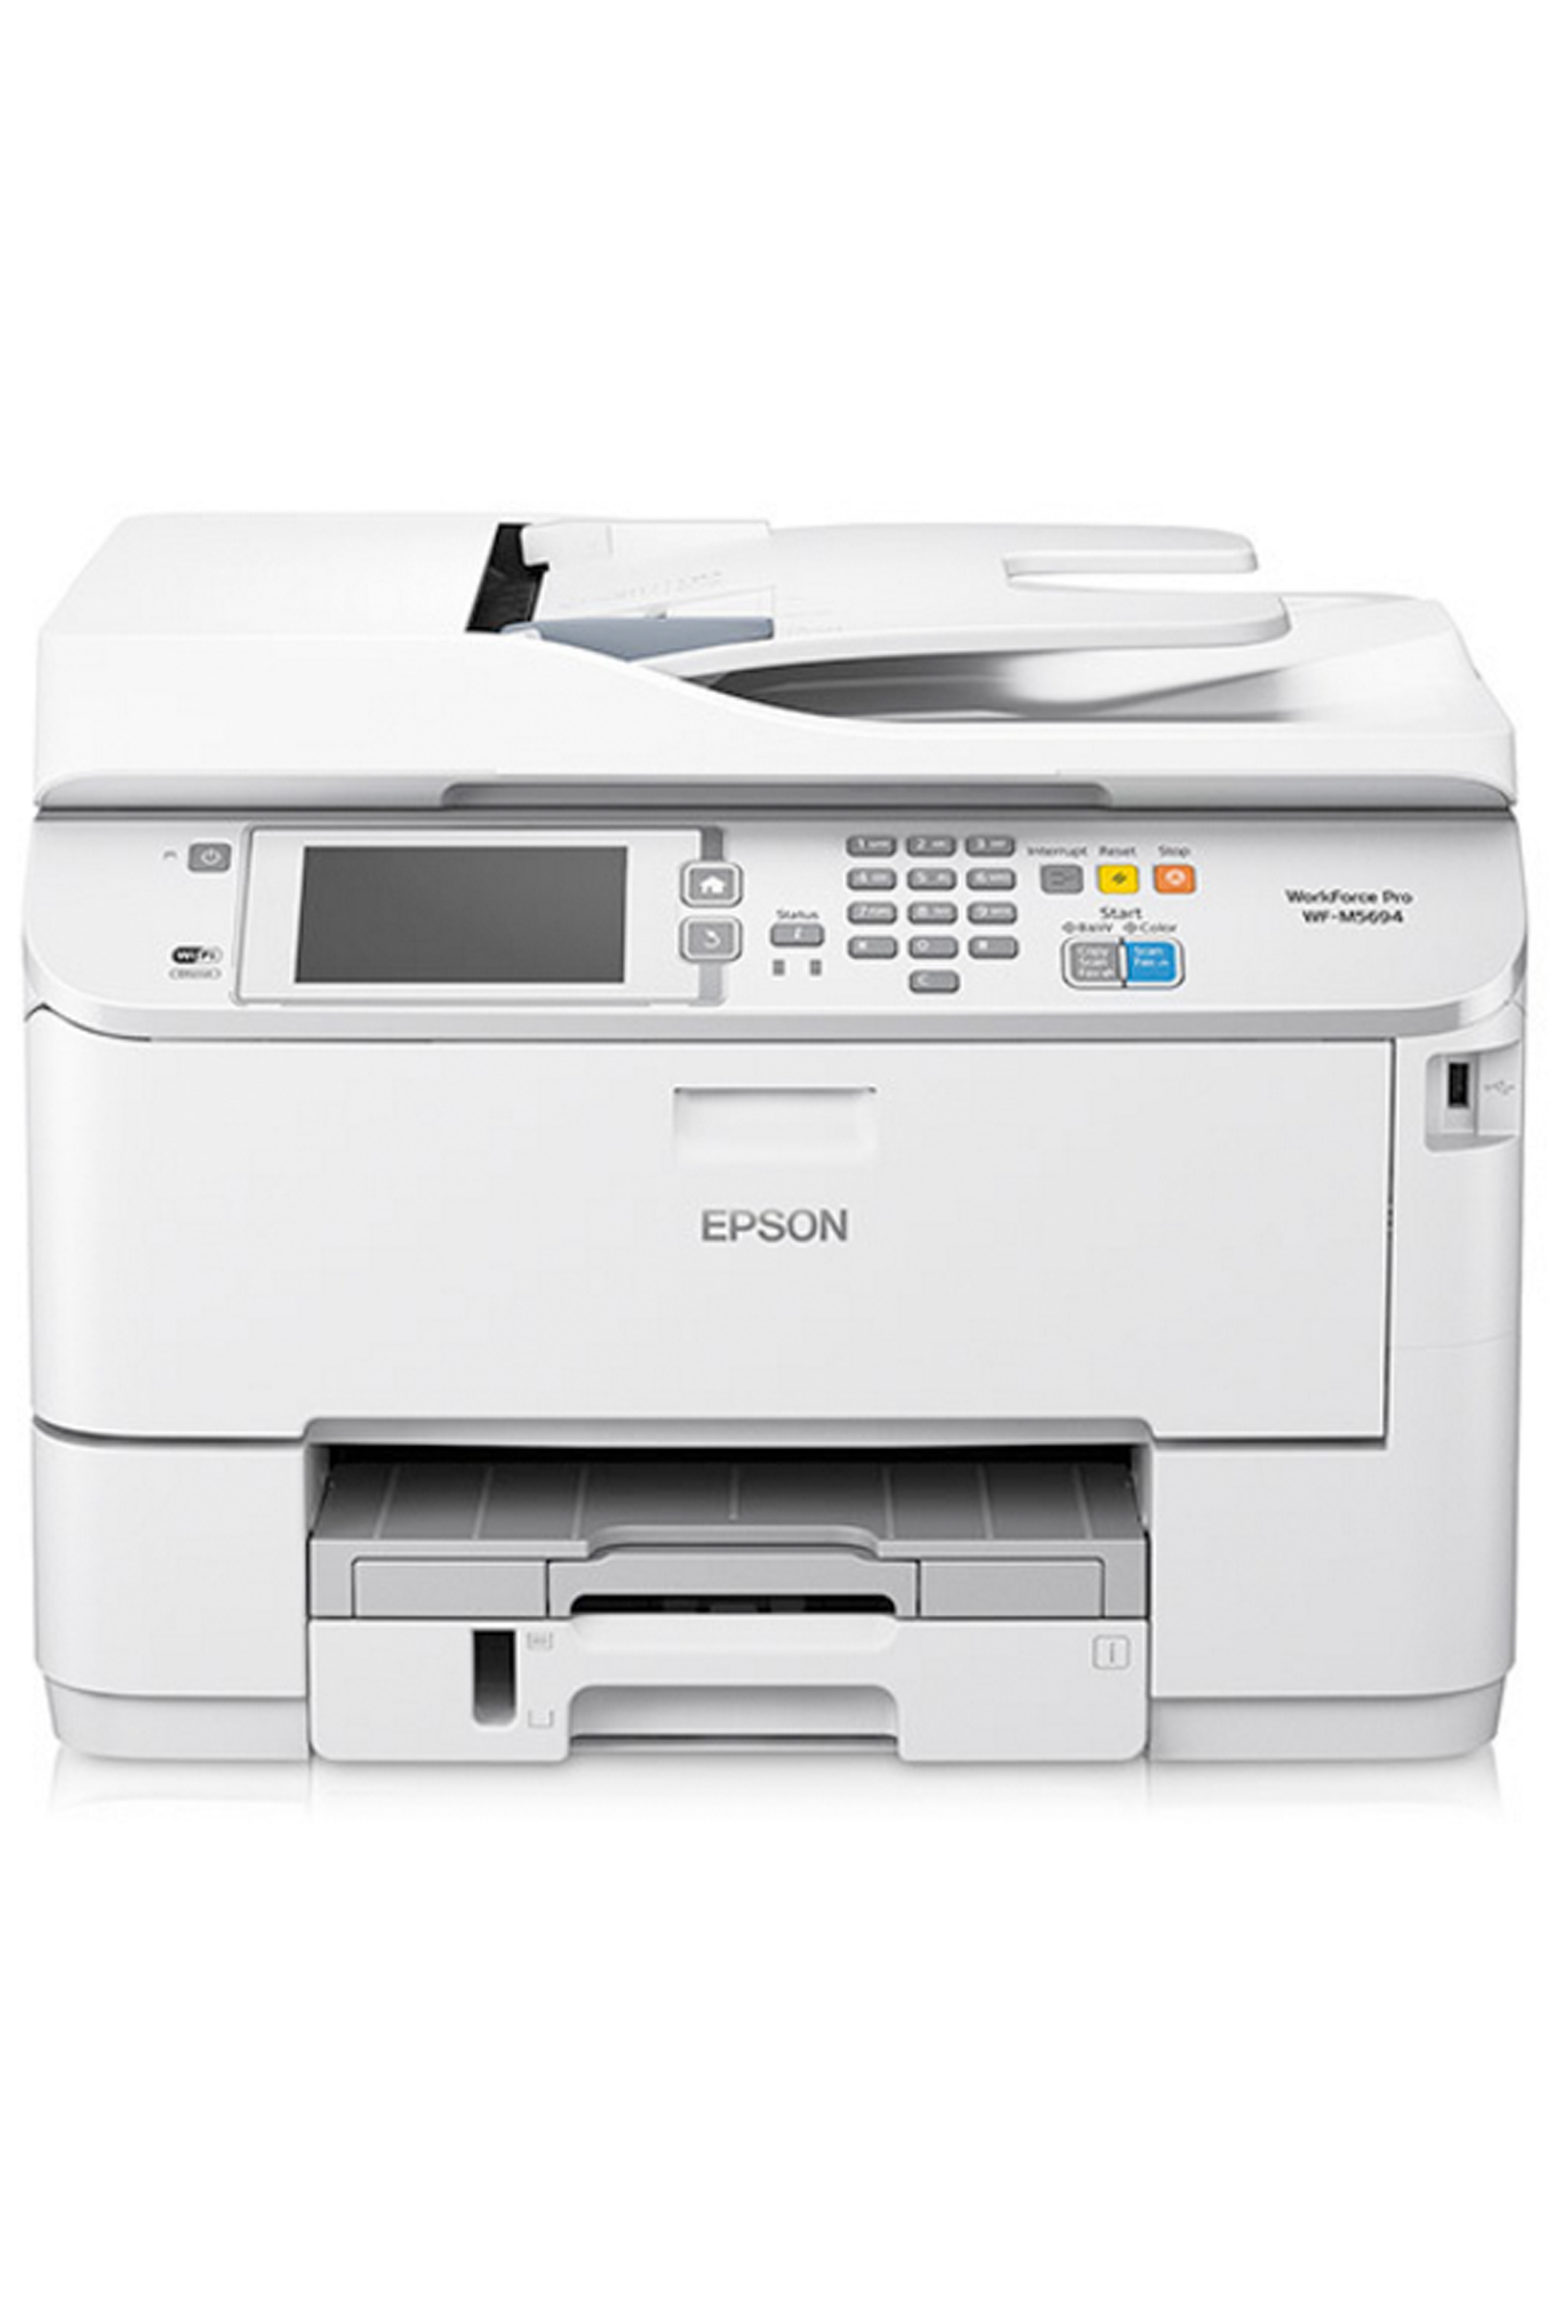 Epson WorkForce Pro WF-M5694 Multifunction Monochrome Printer...